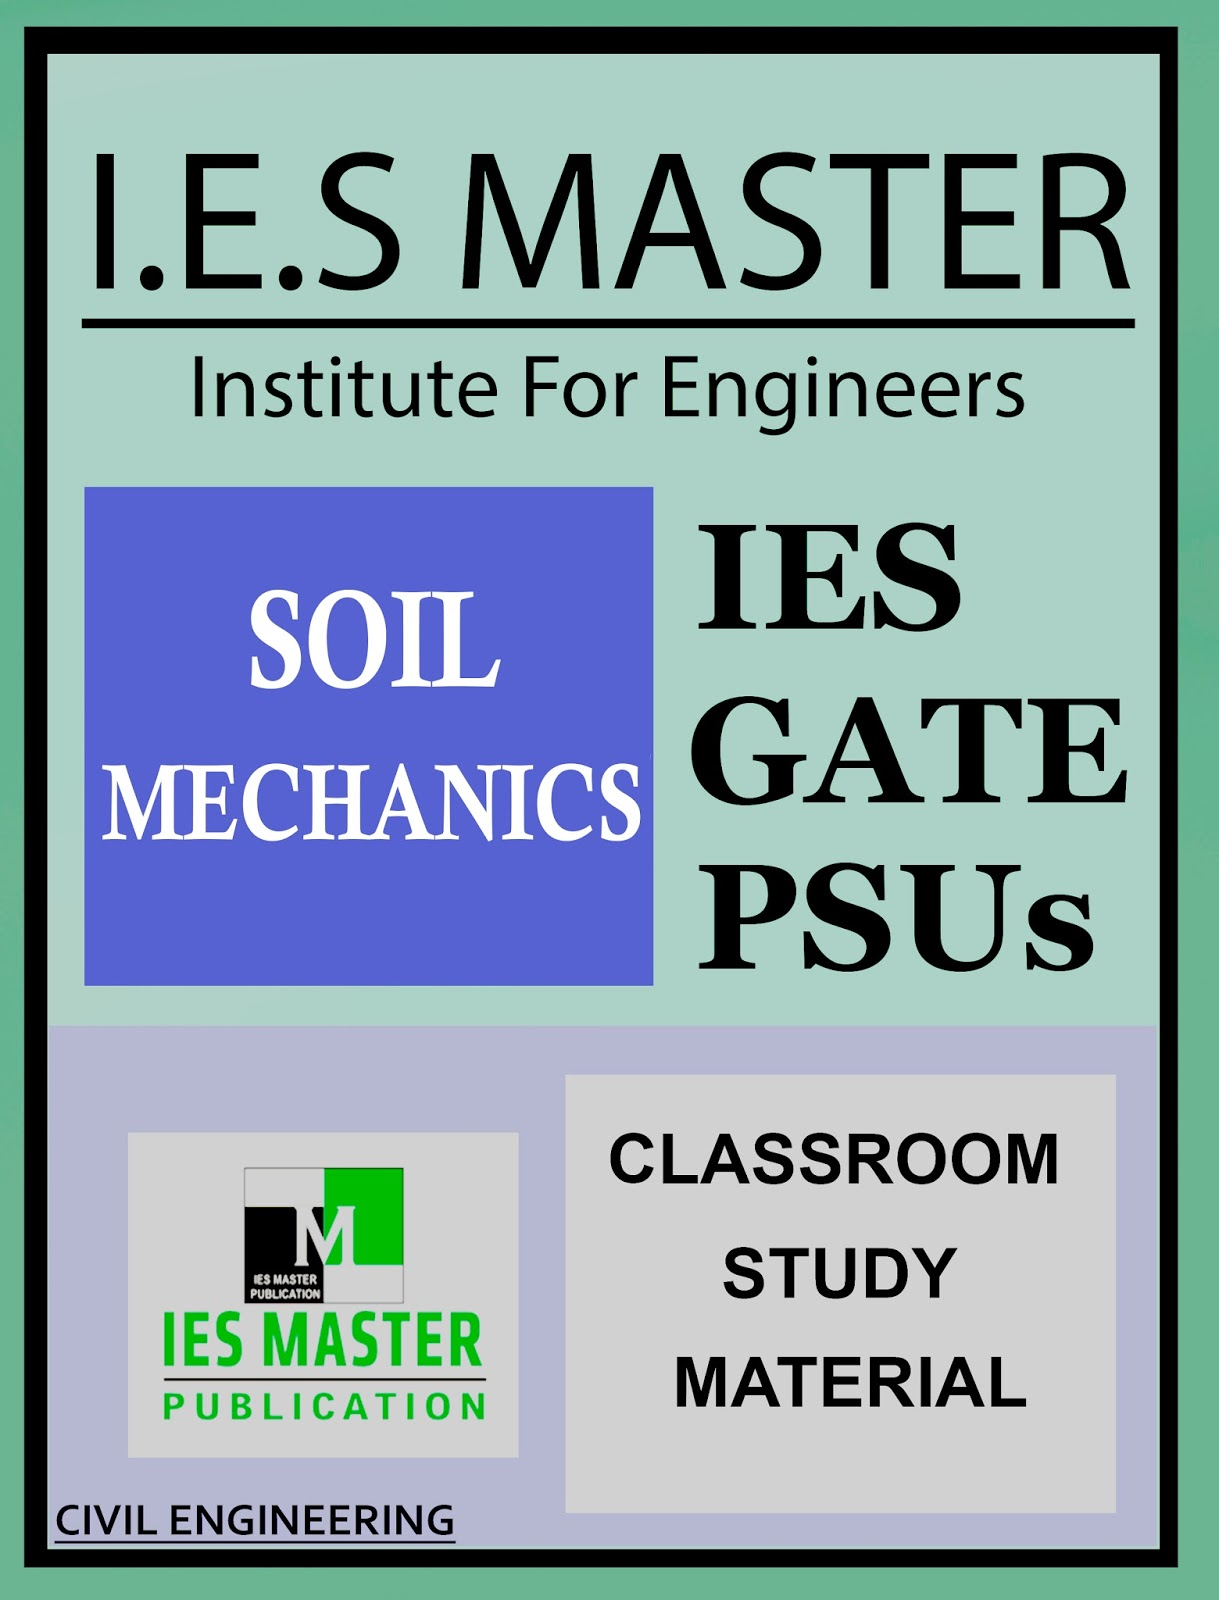 Gate material ies master soil mechanics study material for gate psu gate material ies master soil mechanics study material for gate psu ies govt exams free download pdf civilenggforall fandeluxe Gallery